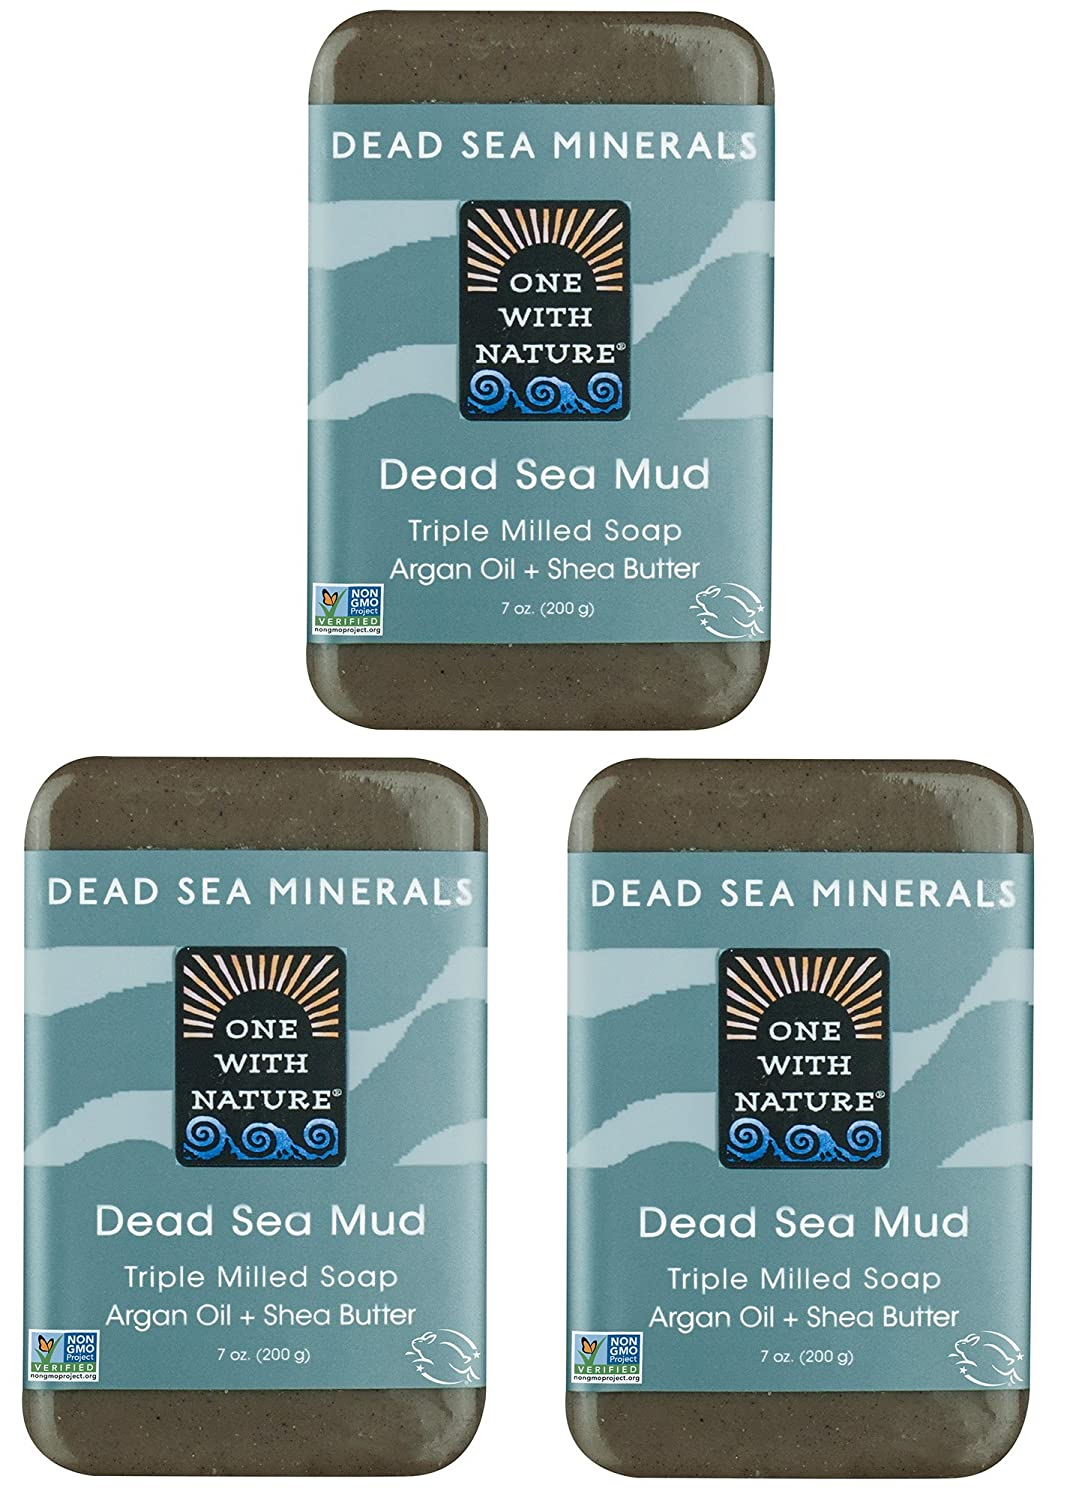 DEAD SEA Salt Mud SOAP 3 PK, Dead Sea Salt, Shea Butter, Argan Oil, Magnesium, Sulfur, Mineral Soap. All Skin Types, Problem Skin. Acne, Eczema, Psoriasis, Natural, Therapeutic, Antibacterial - 7 oz